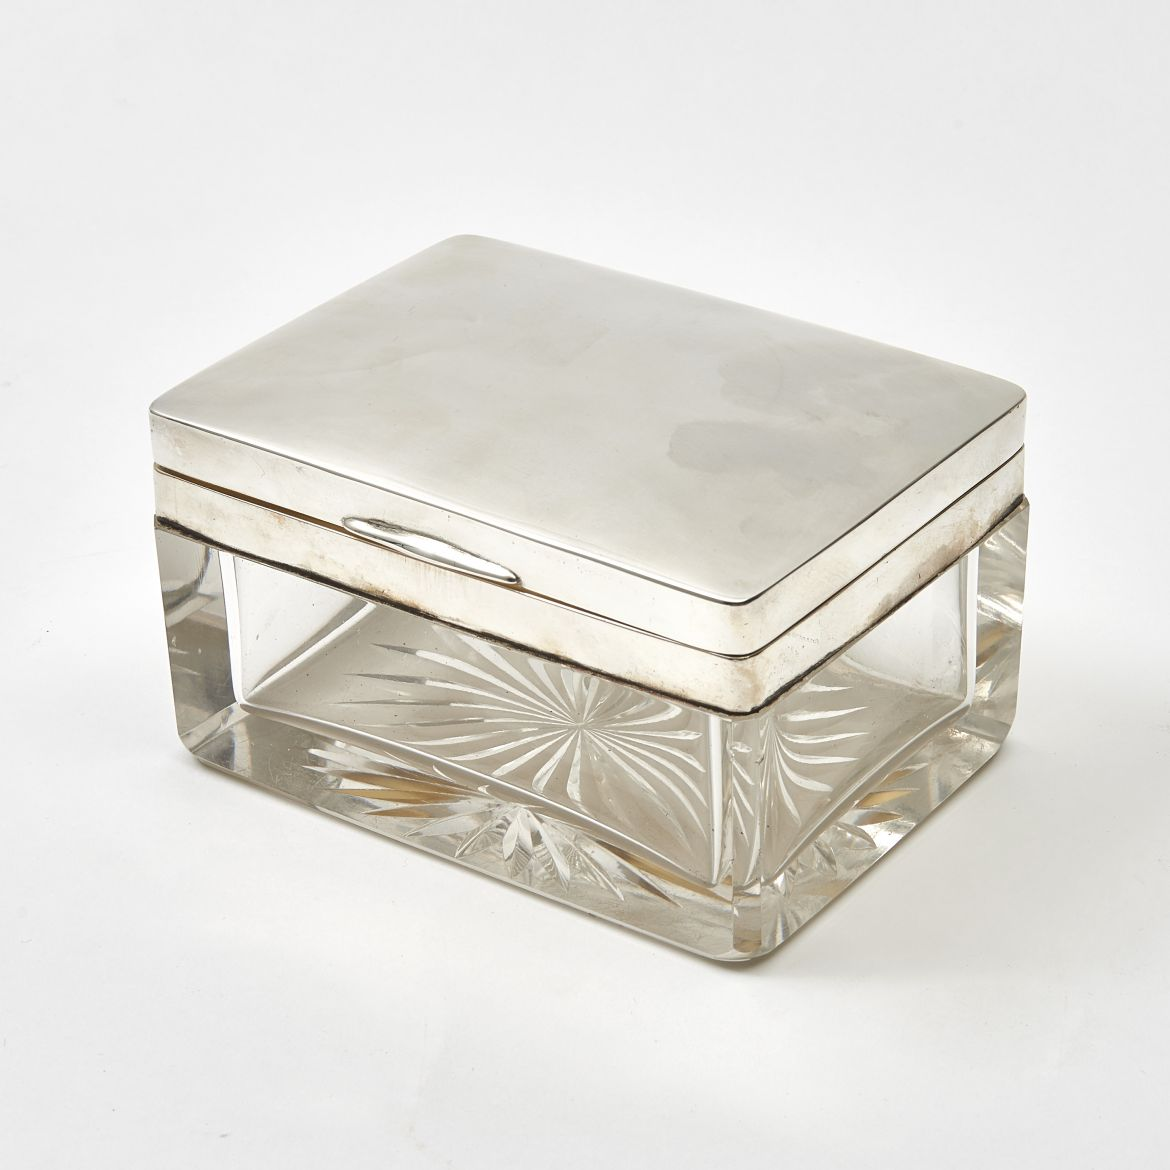 German Silver and Glass box